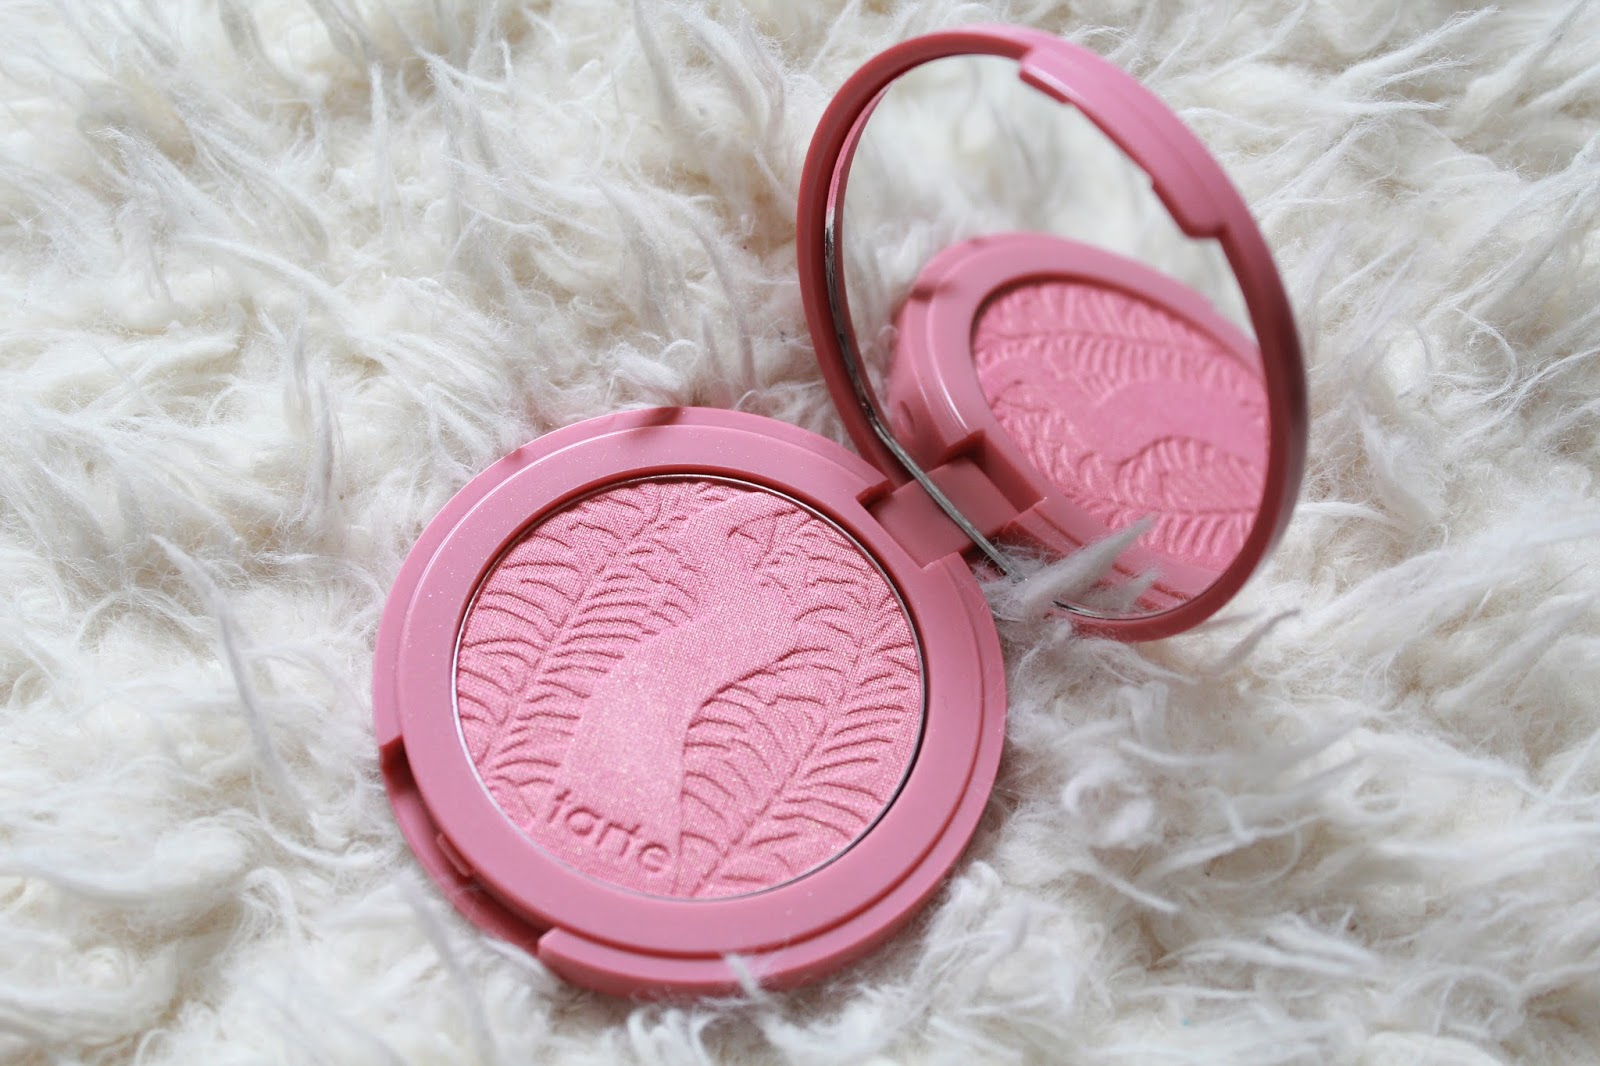 Tarte Amazonian Clay Blush in Glisten